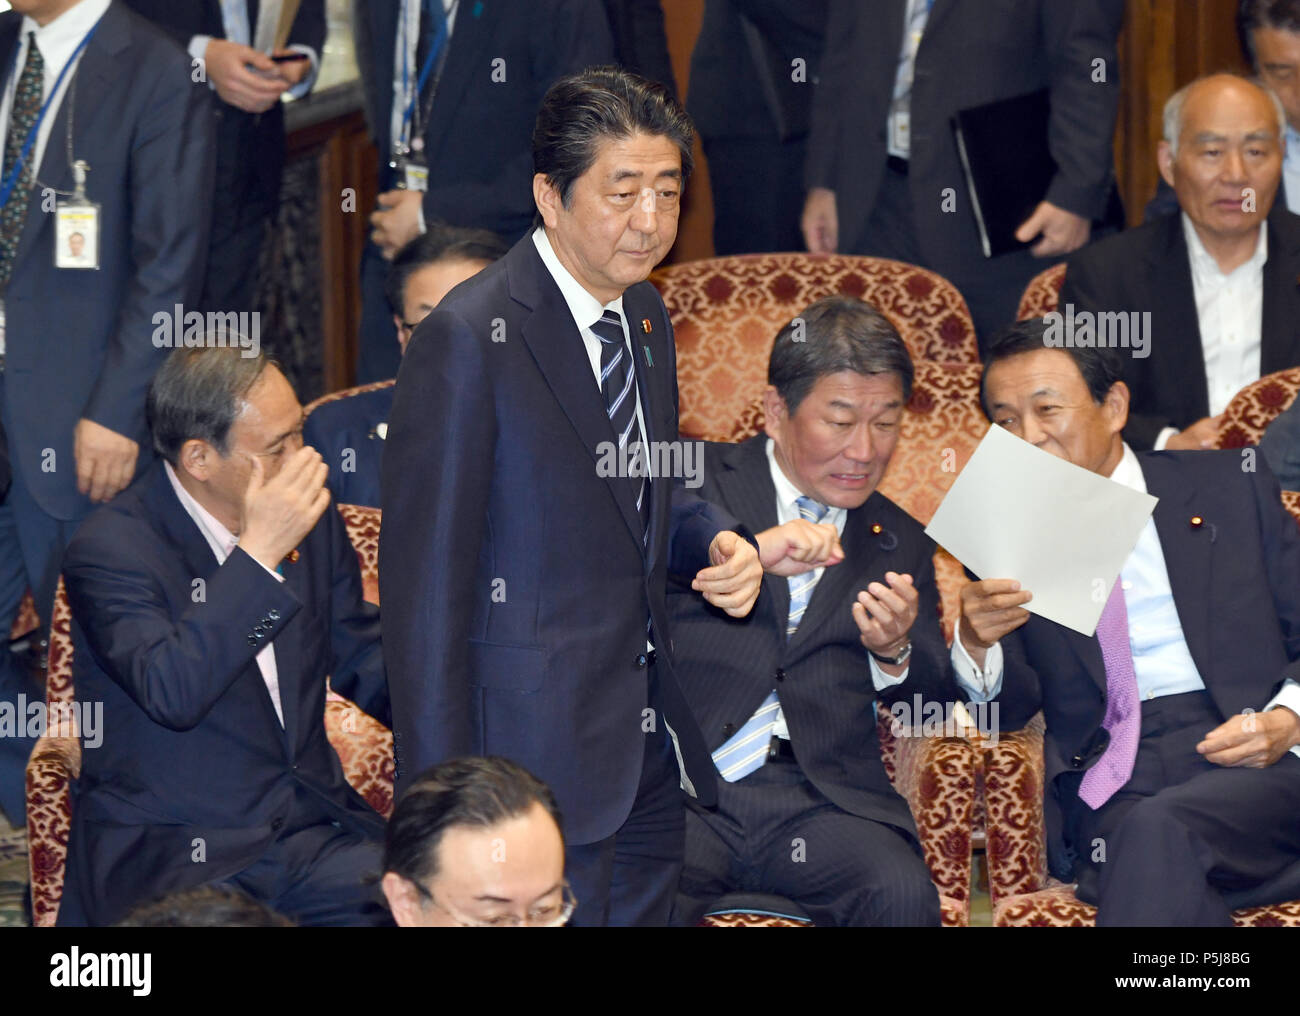 Tokyo, Japan. 27th June, 2018. Japan Prime Minister Shinzo Abe attends a Diet question time of the Joint Review Board of the Committee on Fundamental National Policies in Tokyo on Wednesday, June 27, 2018. Credit: Natsuki Sakai/AFLO/Alamy Live News - Stock Image